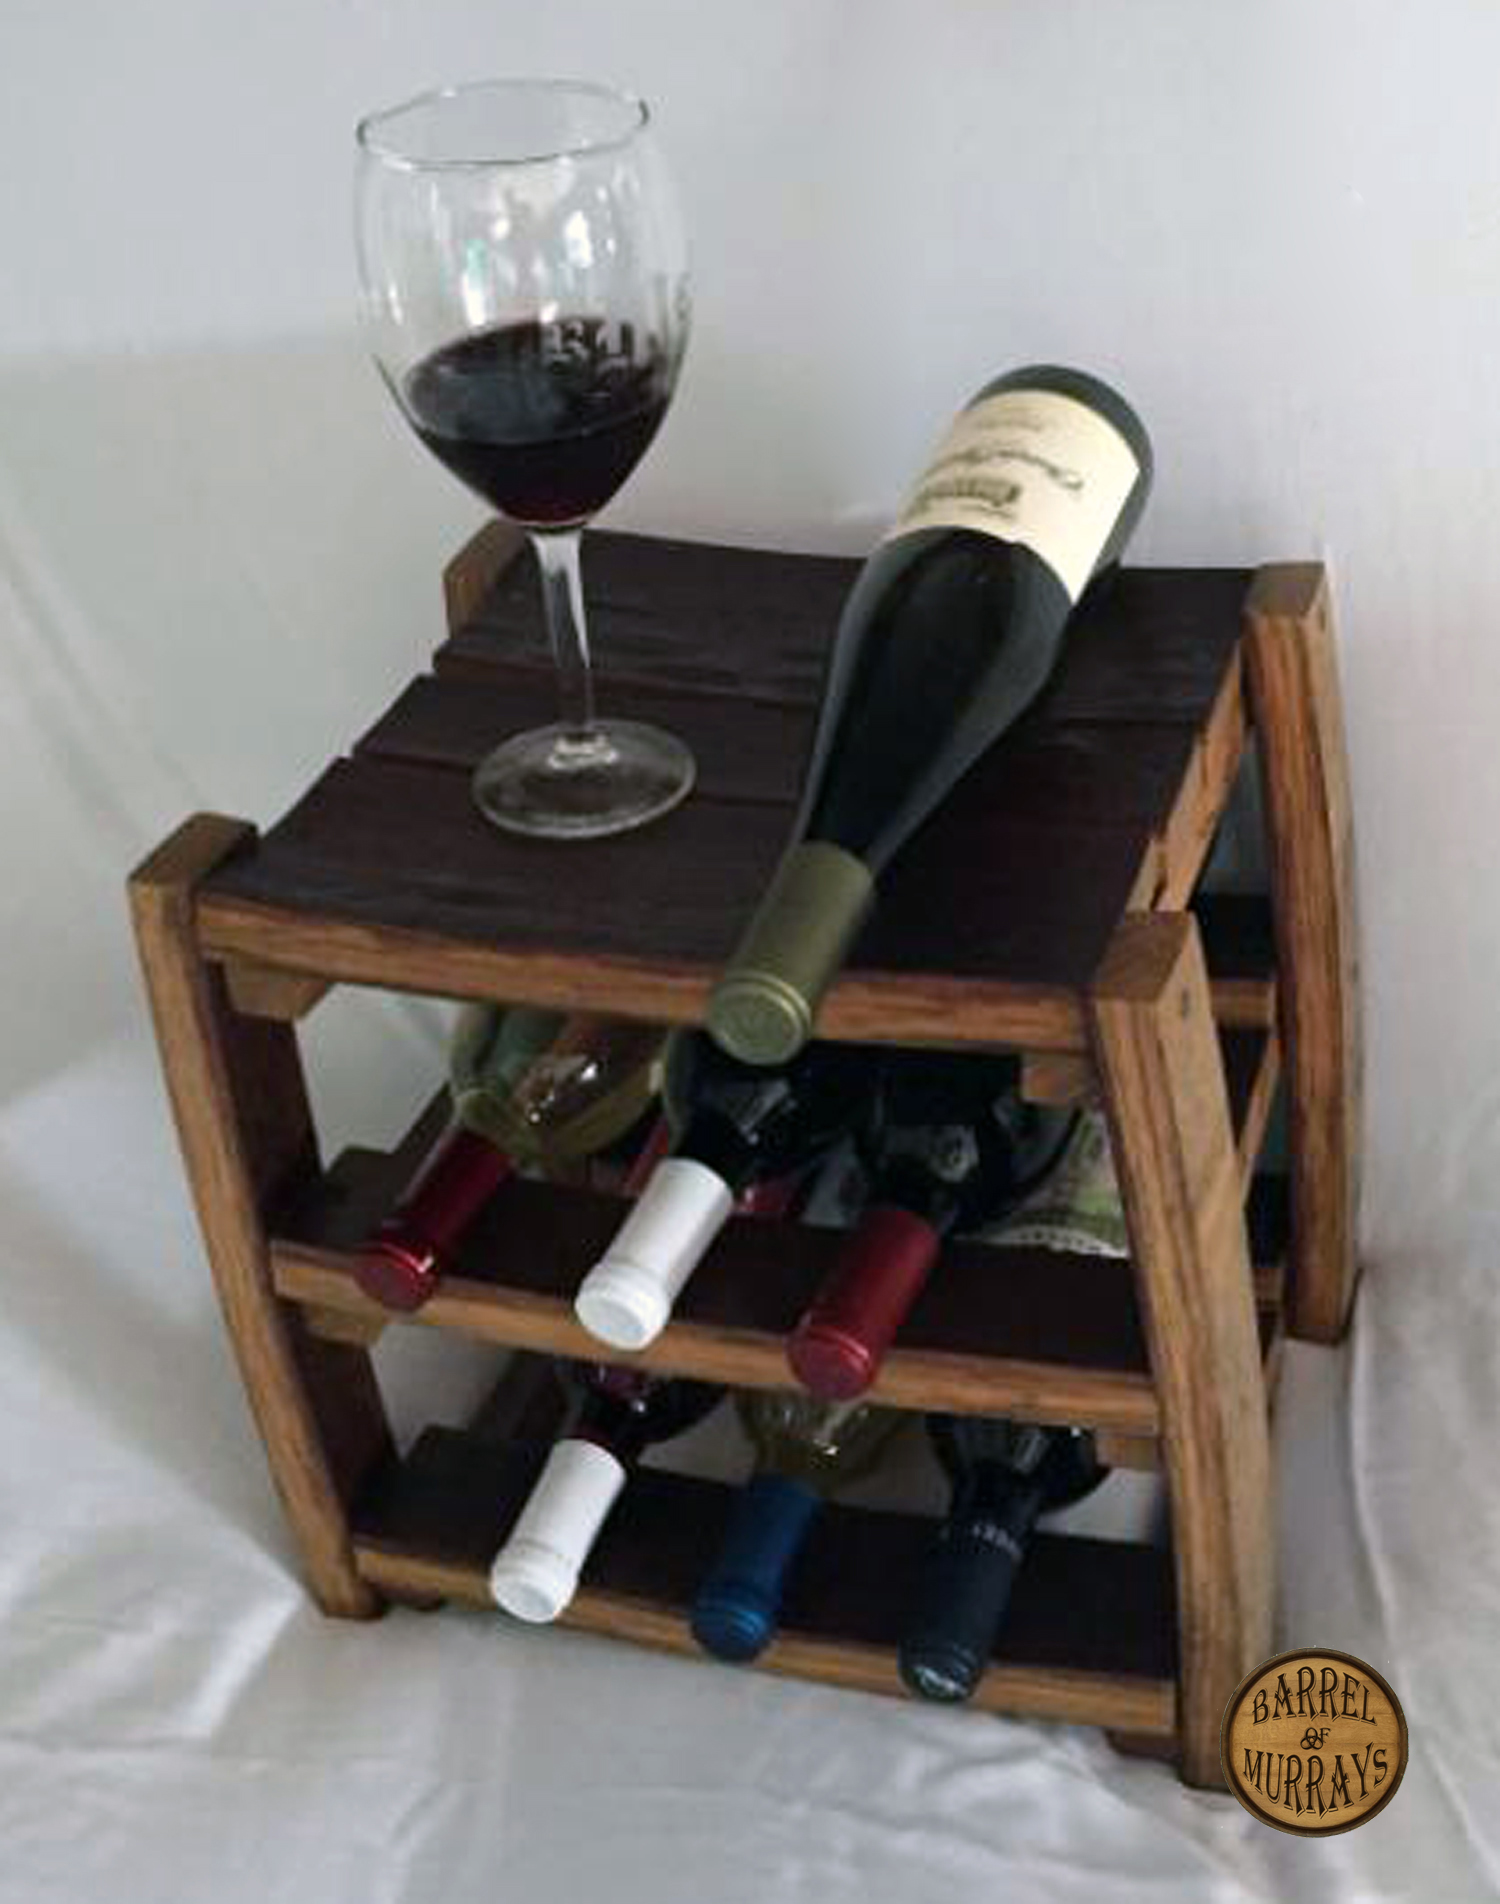 Counter Top Wine Rack Barrel Of Murrays